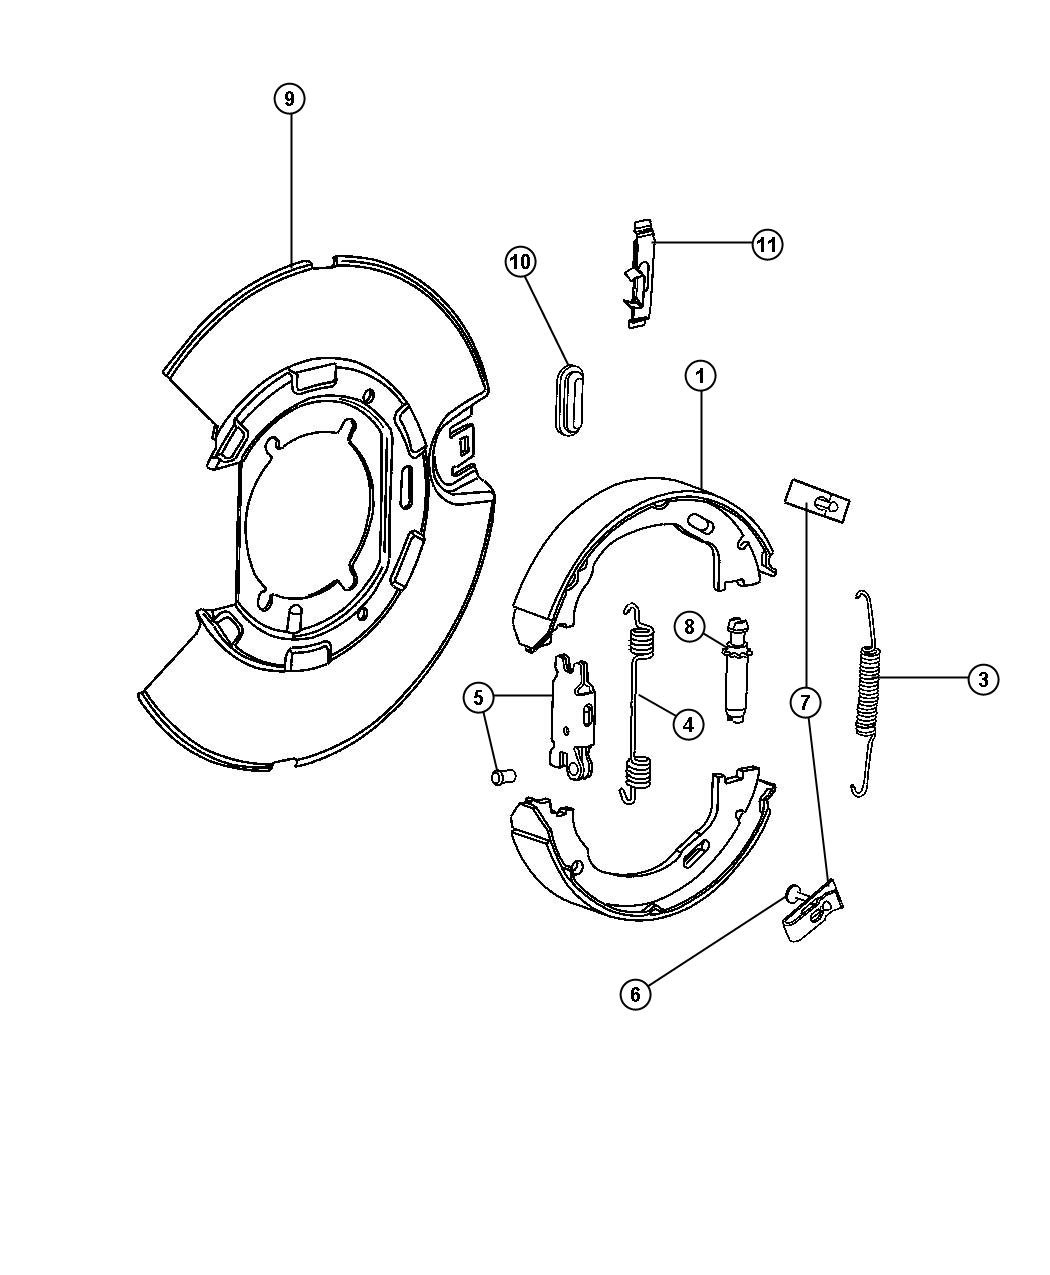 service manual  2010 chrysler 300 brake replacement system